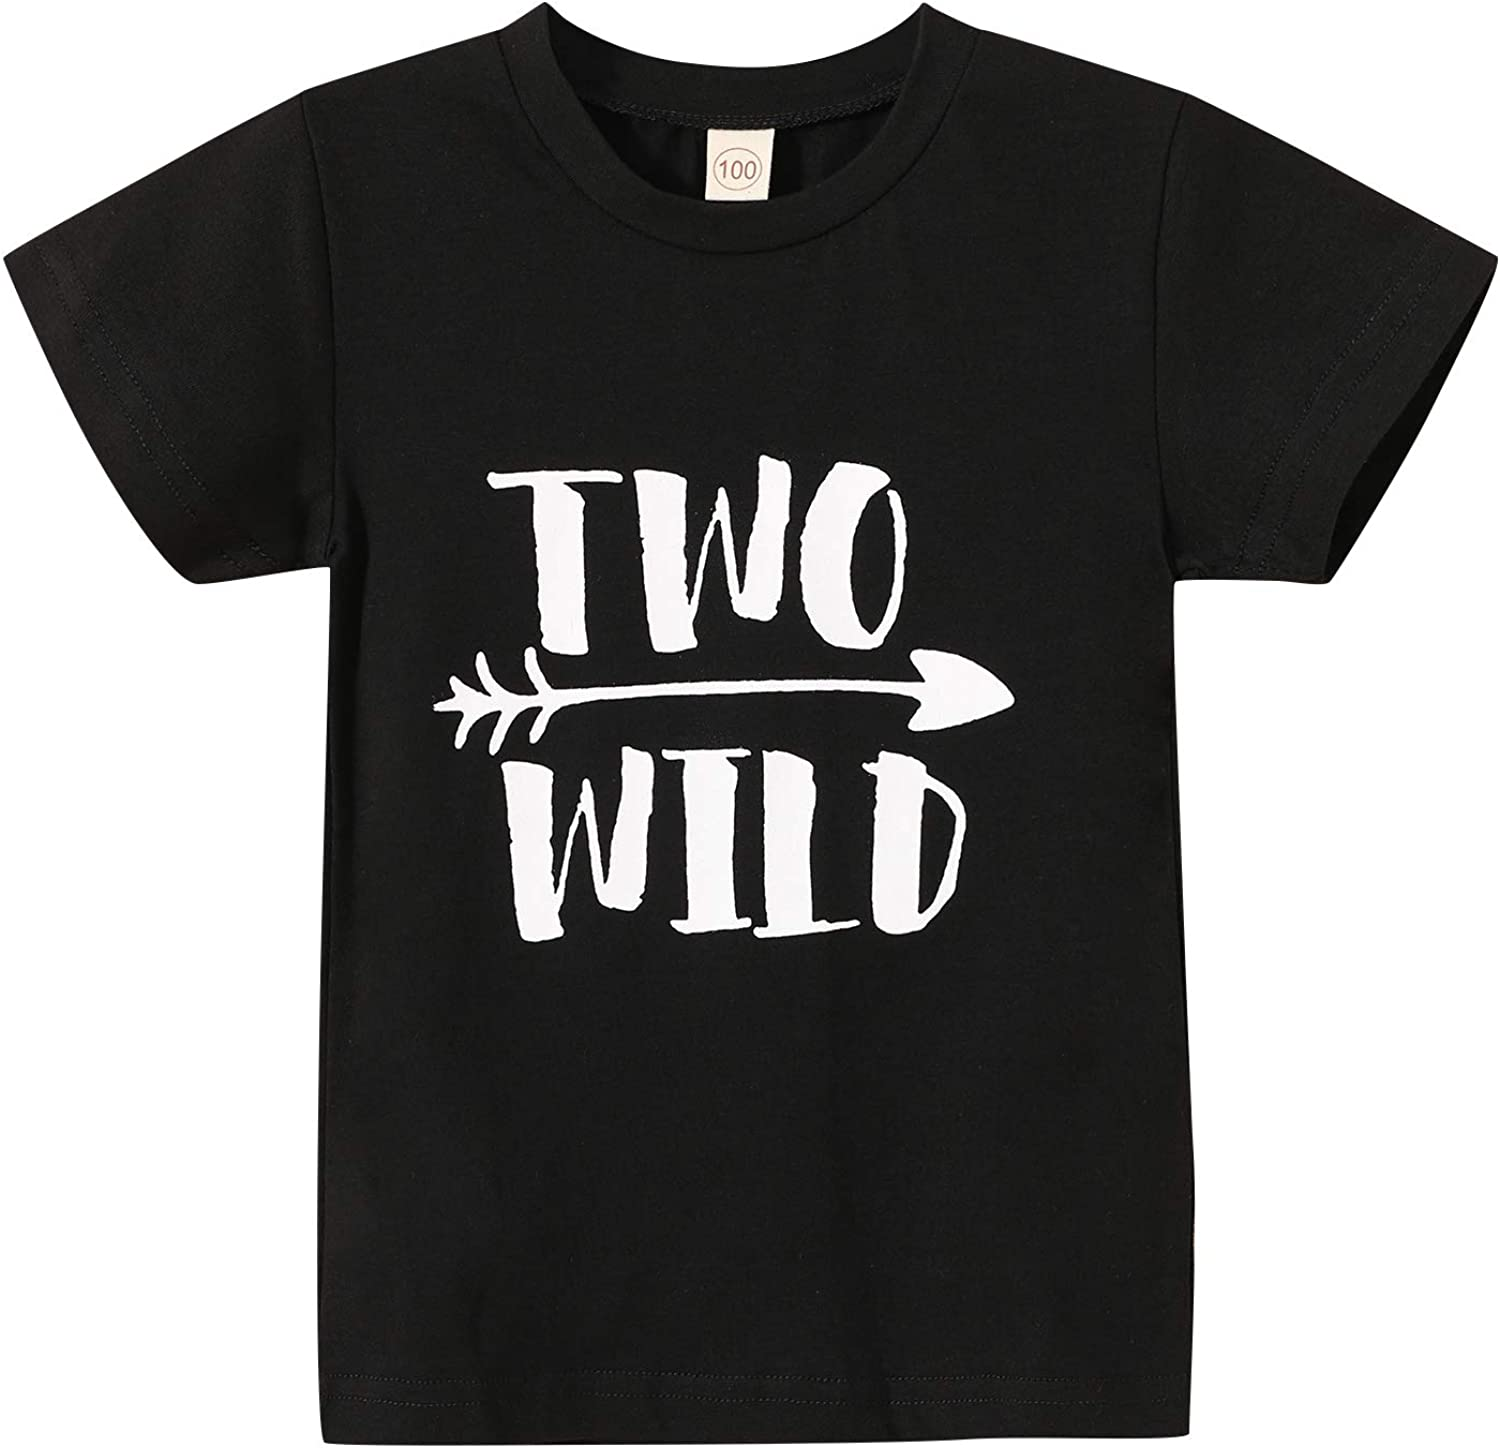 Second Birthday T-Shirt Baby Boy Girl Two Wild Blouse Two Year Old Birthday Top Clothes Outfits